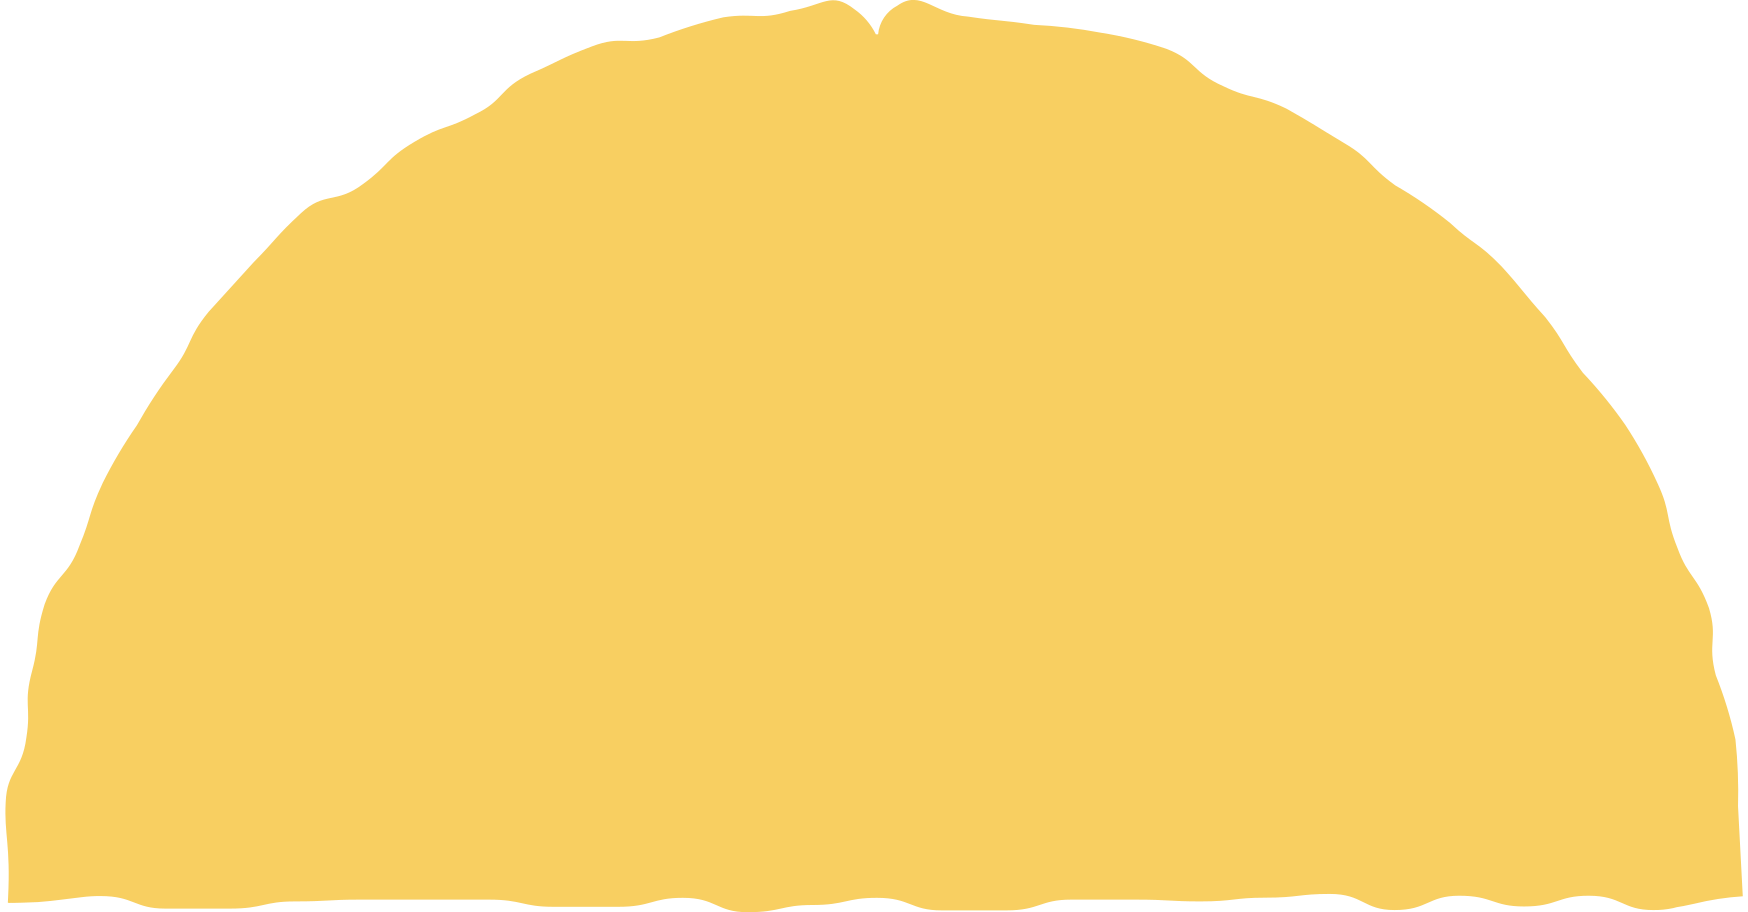 style semicircle yellow Vector images in PNG and SVG   Icons8 Illustrations